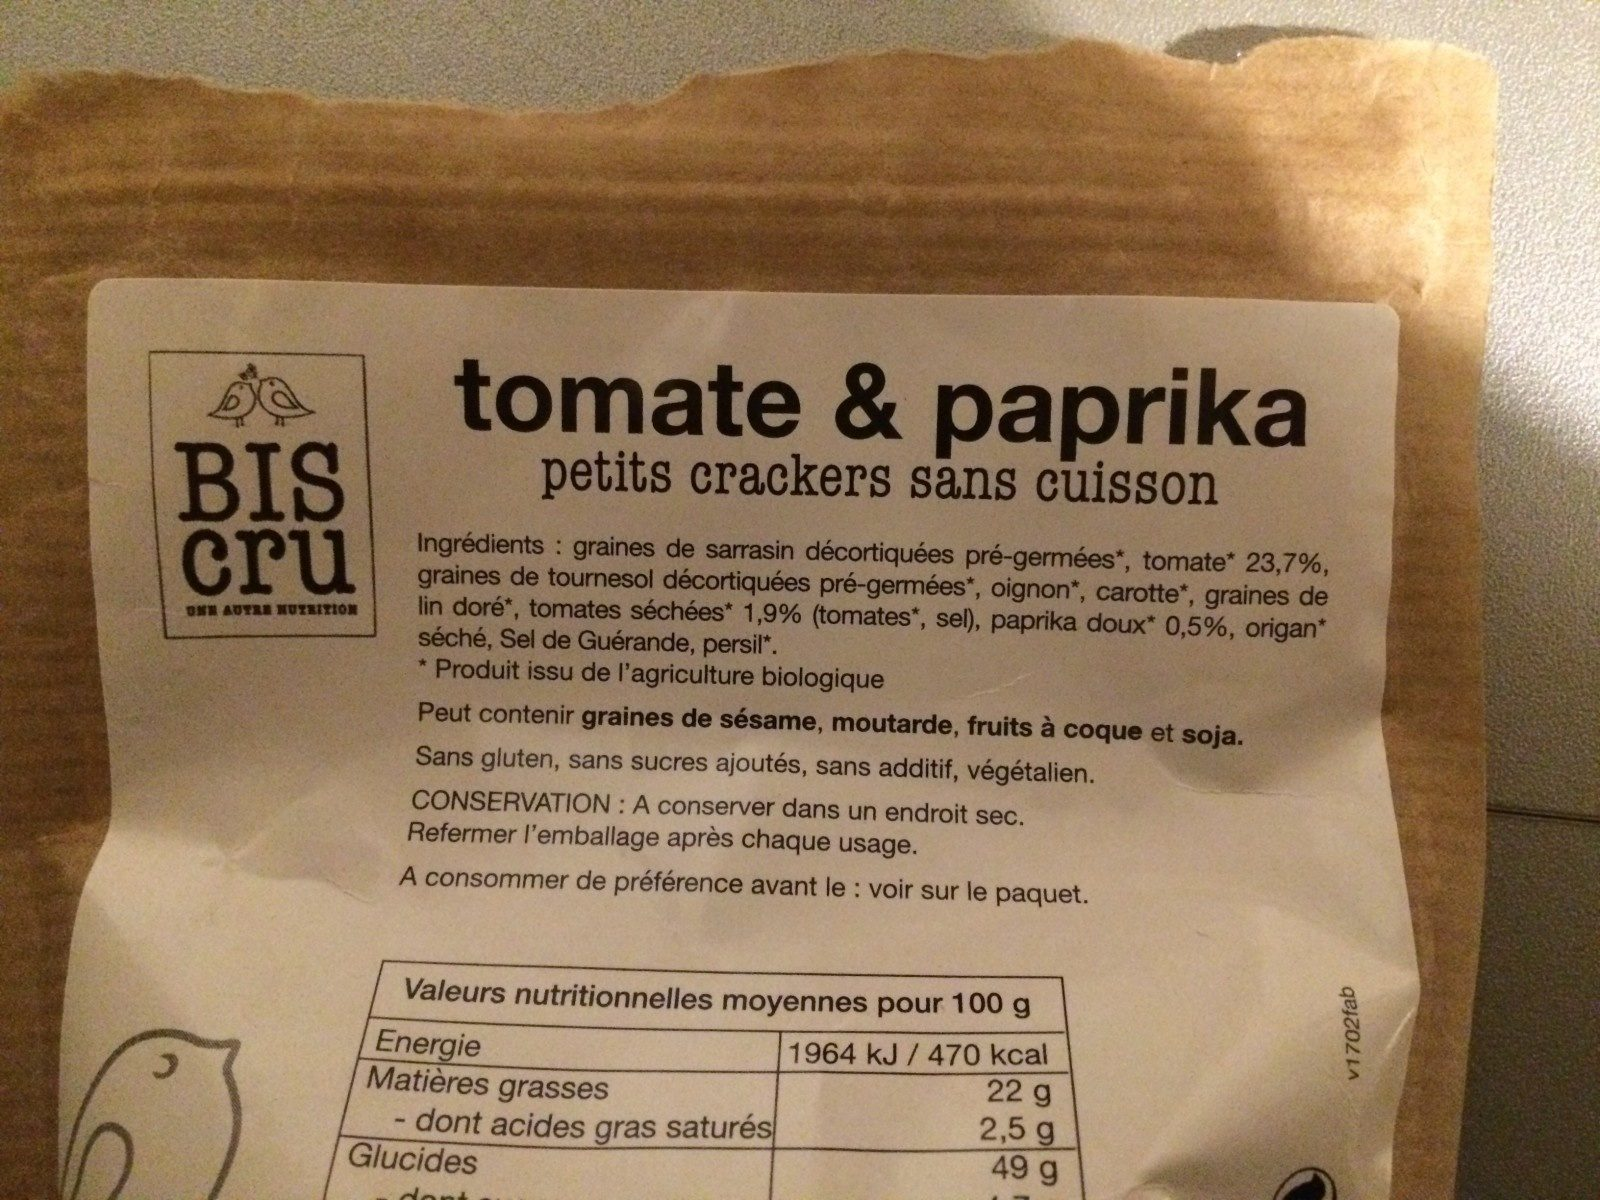 The Original petit crackers tomate & paprika - Ingrediënten